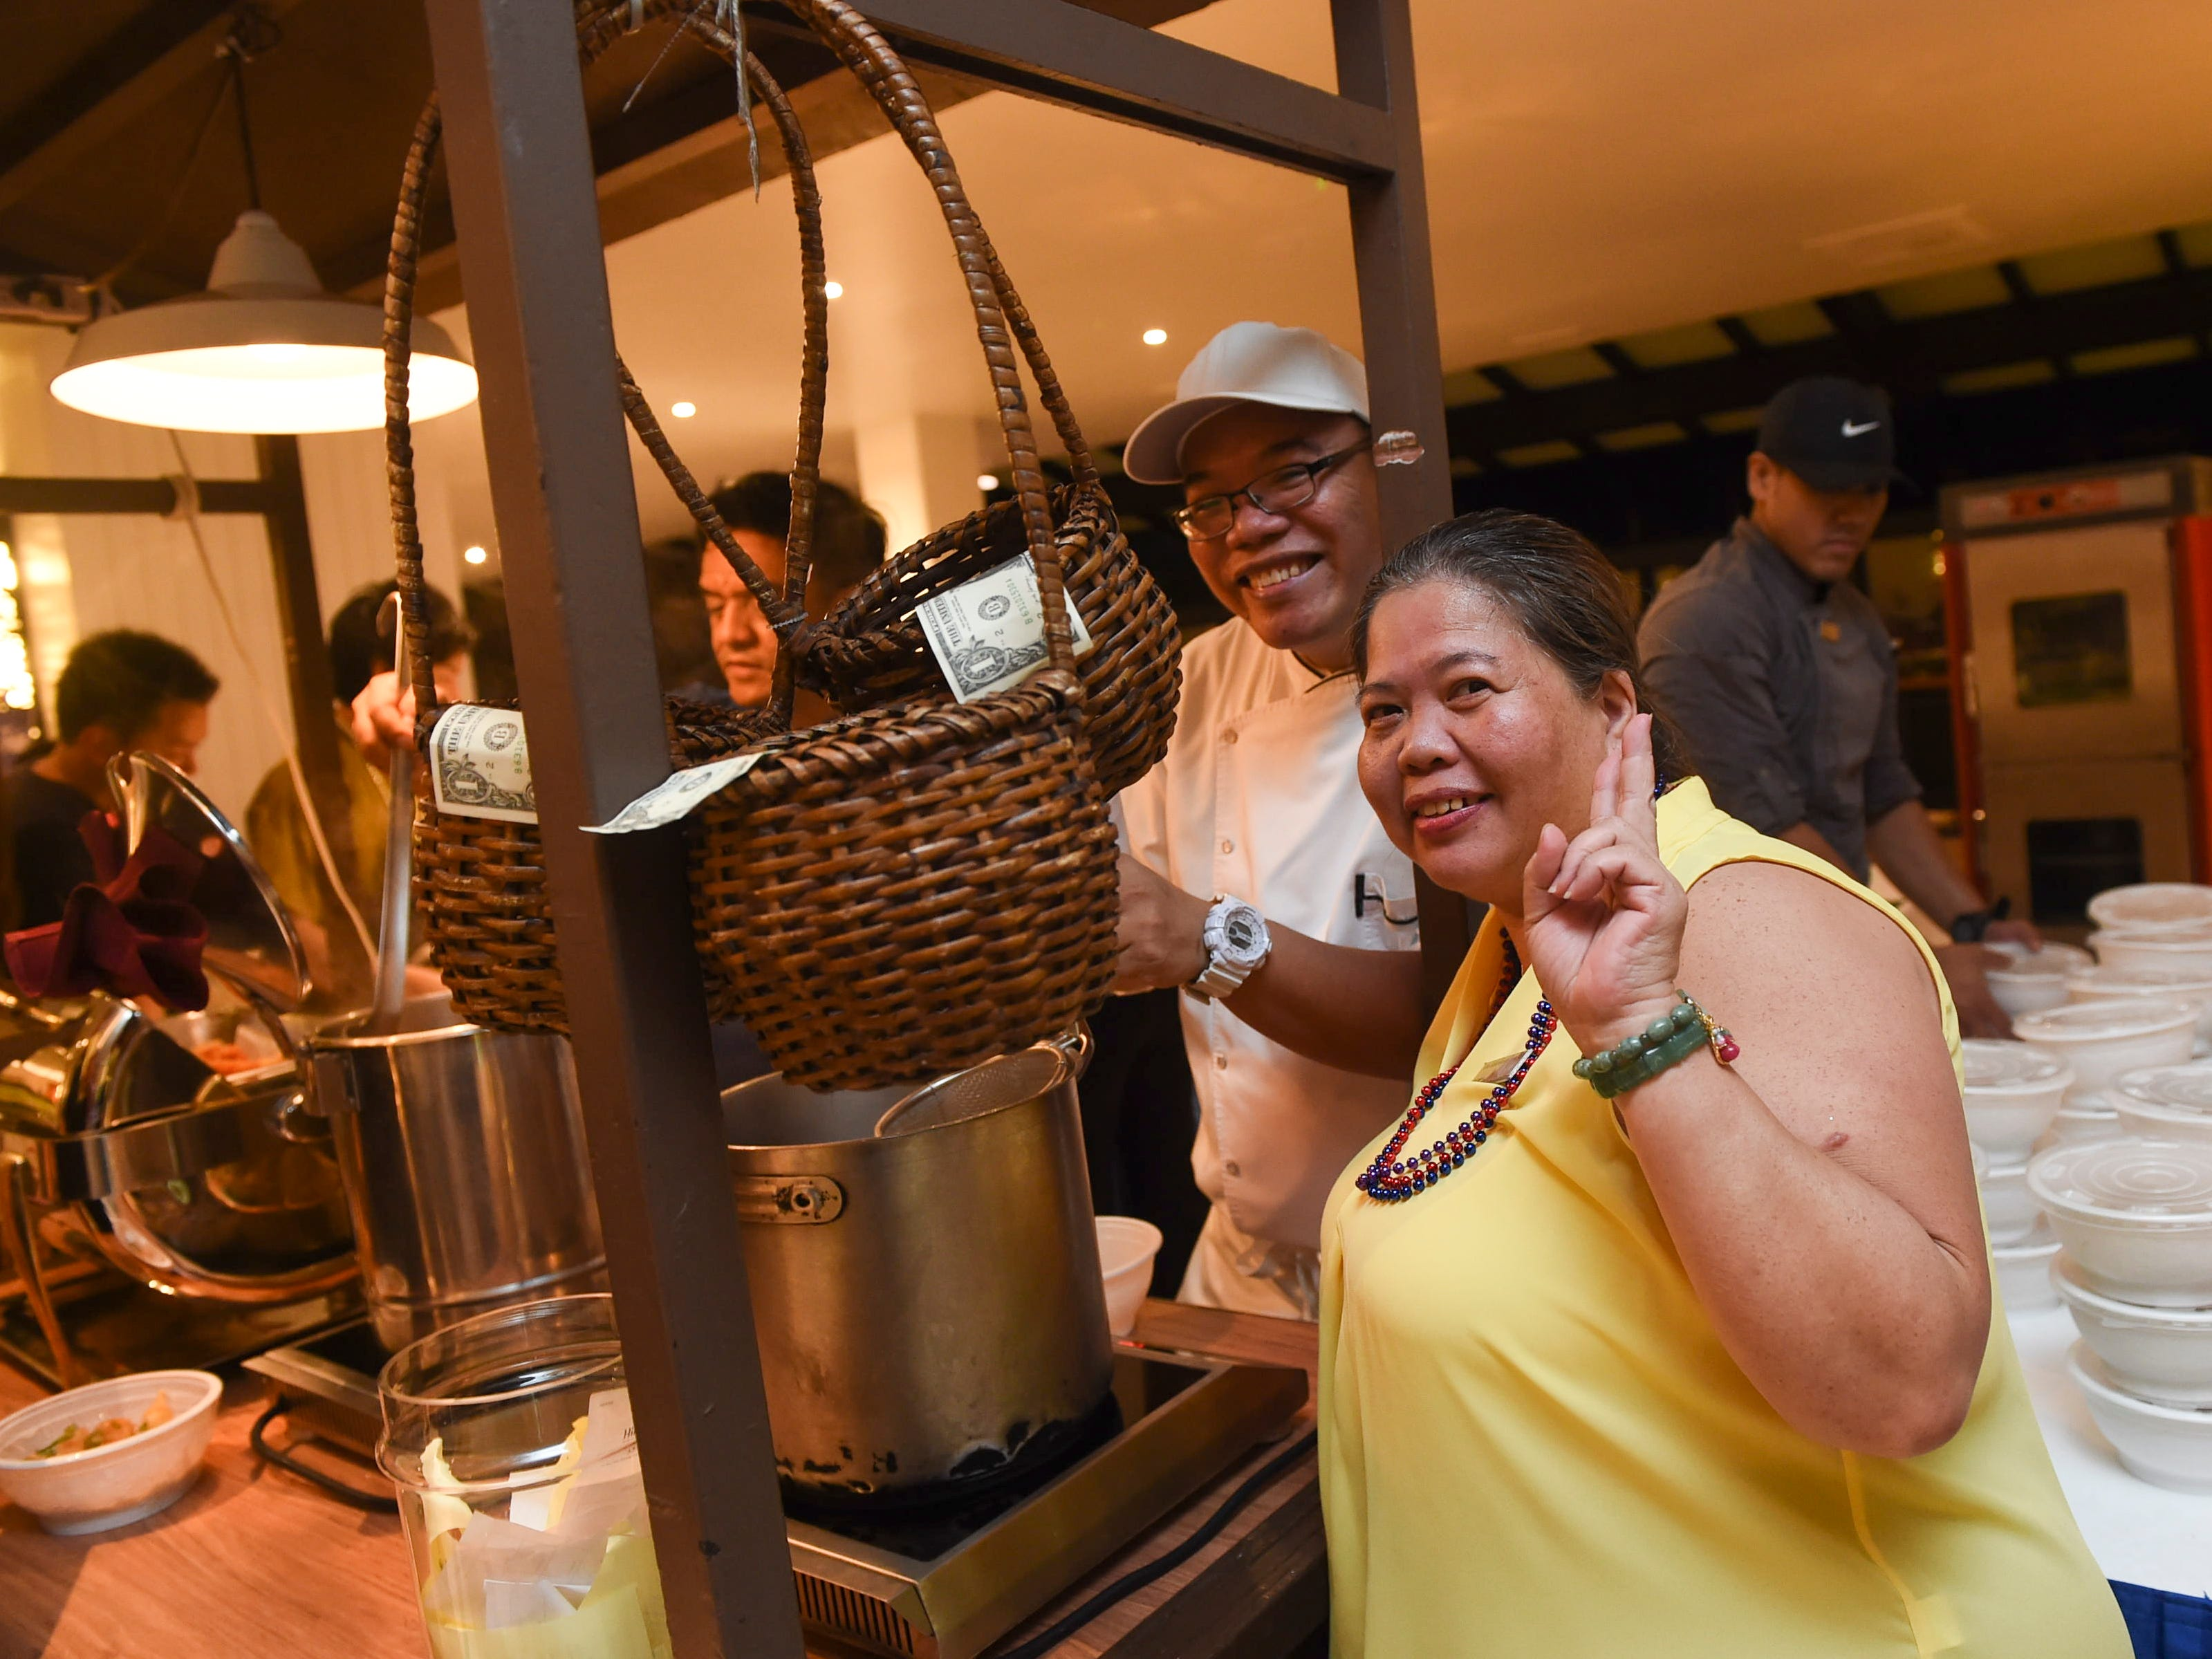 The traditional Long Life Noodles cart is set up for service in celebration of New Year's Day at the Hilton Guam Resort and Spa lobby, Jan. 1, 2019.